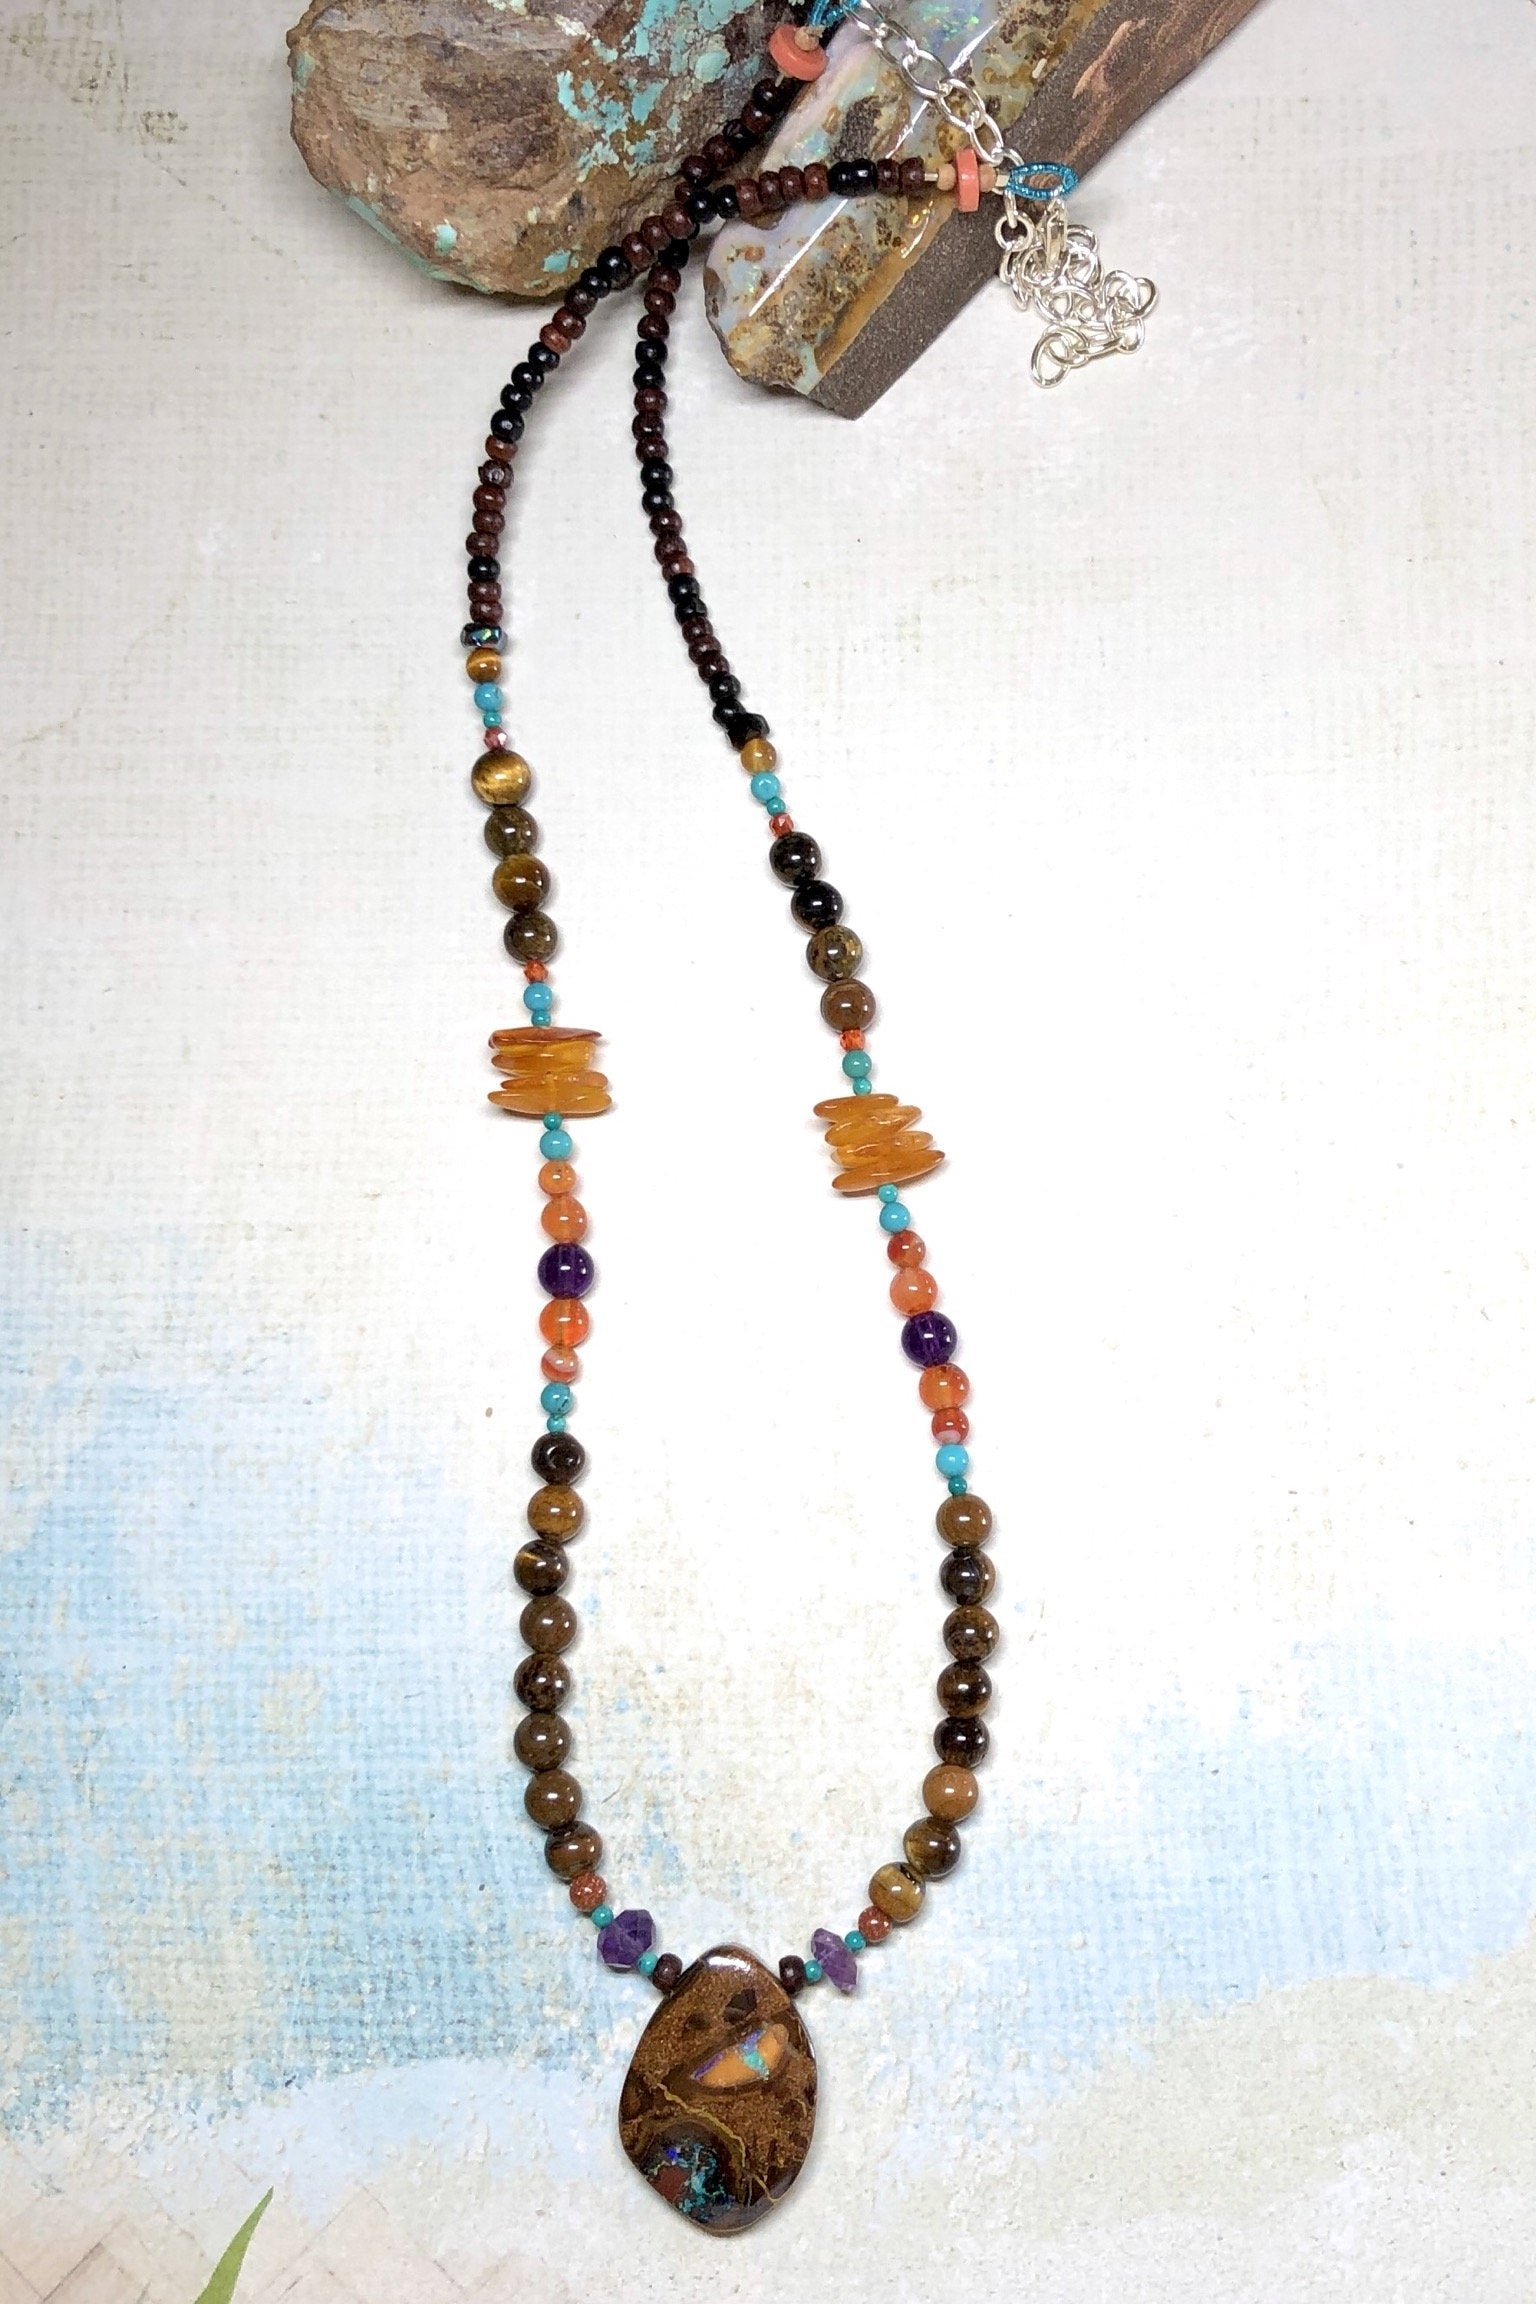 A powerful gemstone necklace with natural stones. Perfect to wear with chic boho luxe clothing an exclusive design